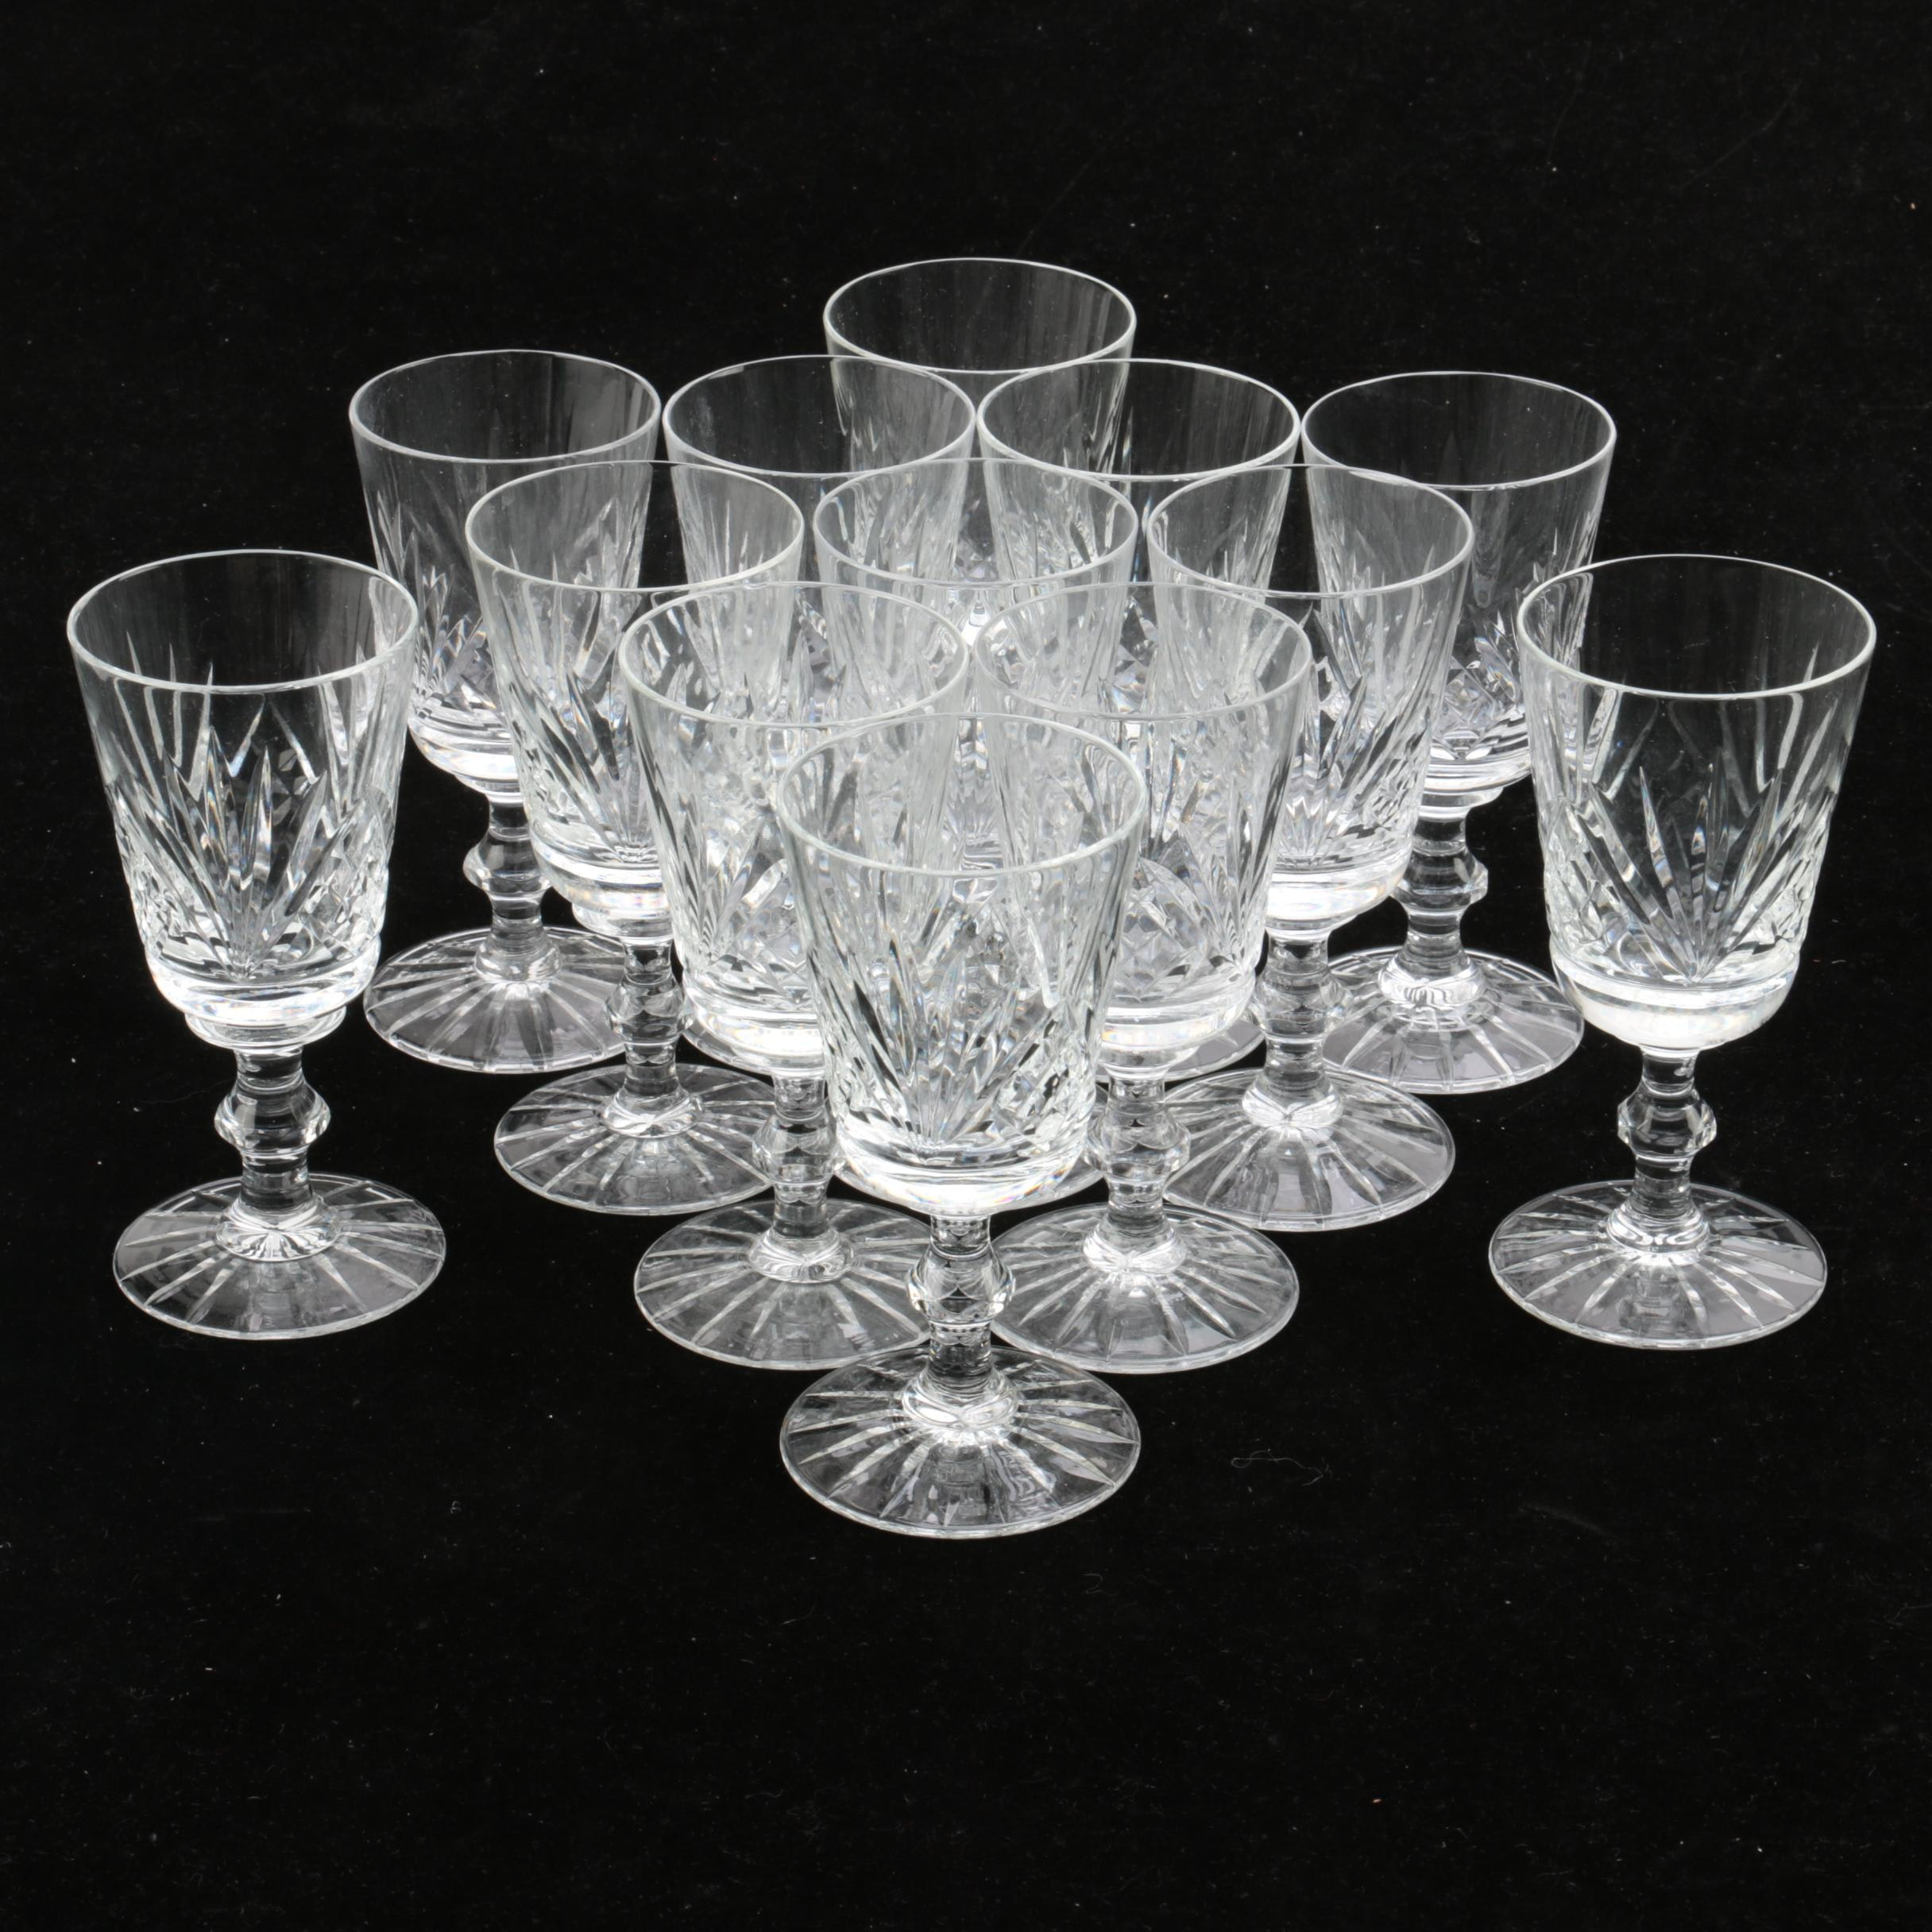 Vintage Hand-Cut Crystal Sherry Glasses